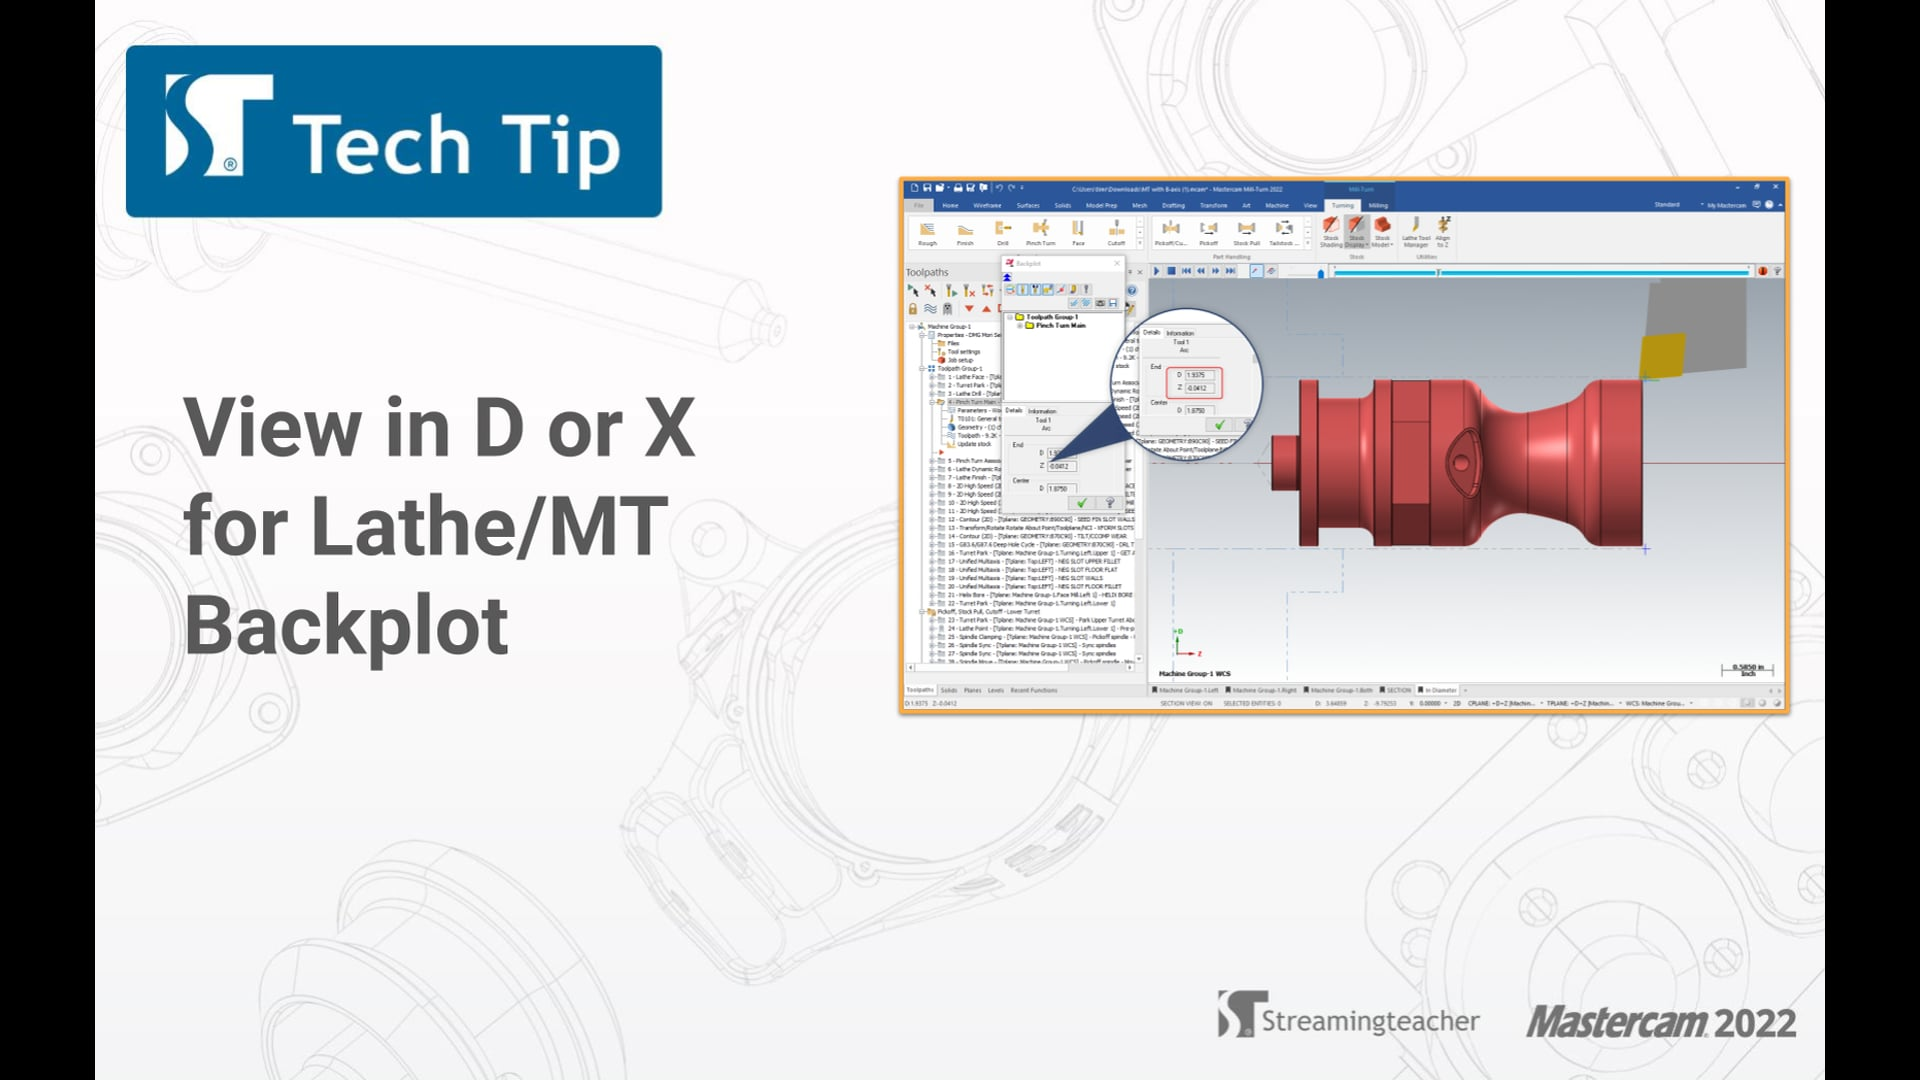 View in D or X for Lathe or MT Backplot